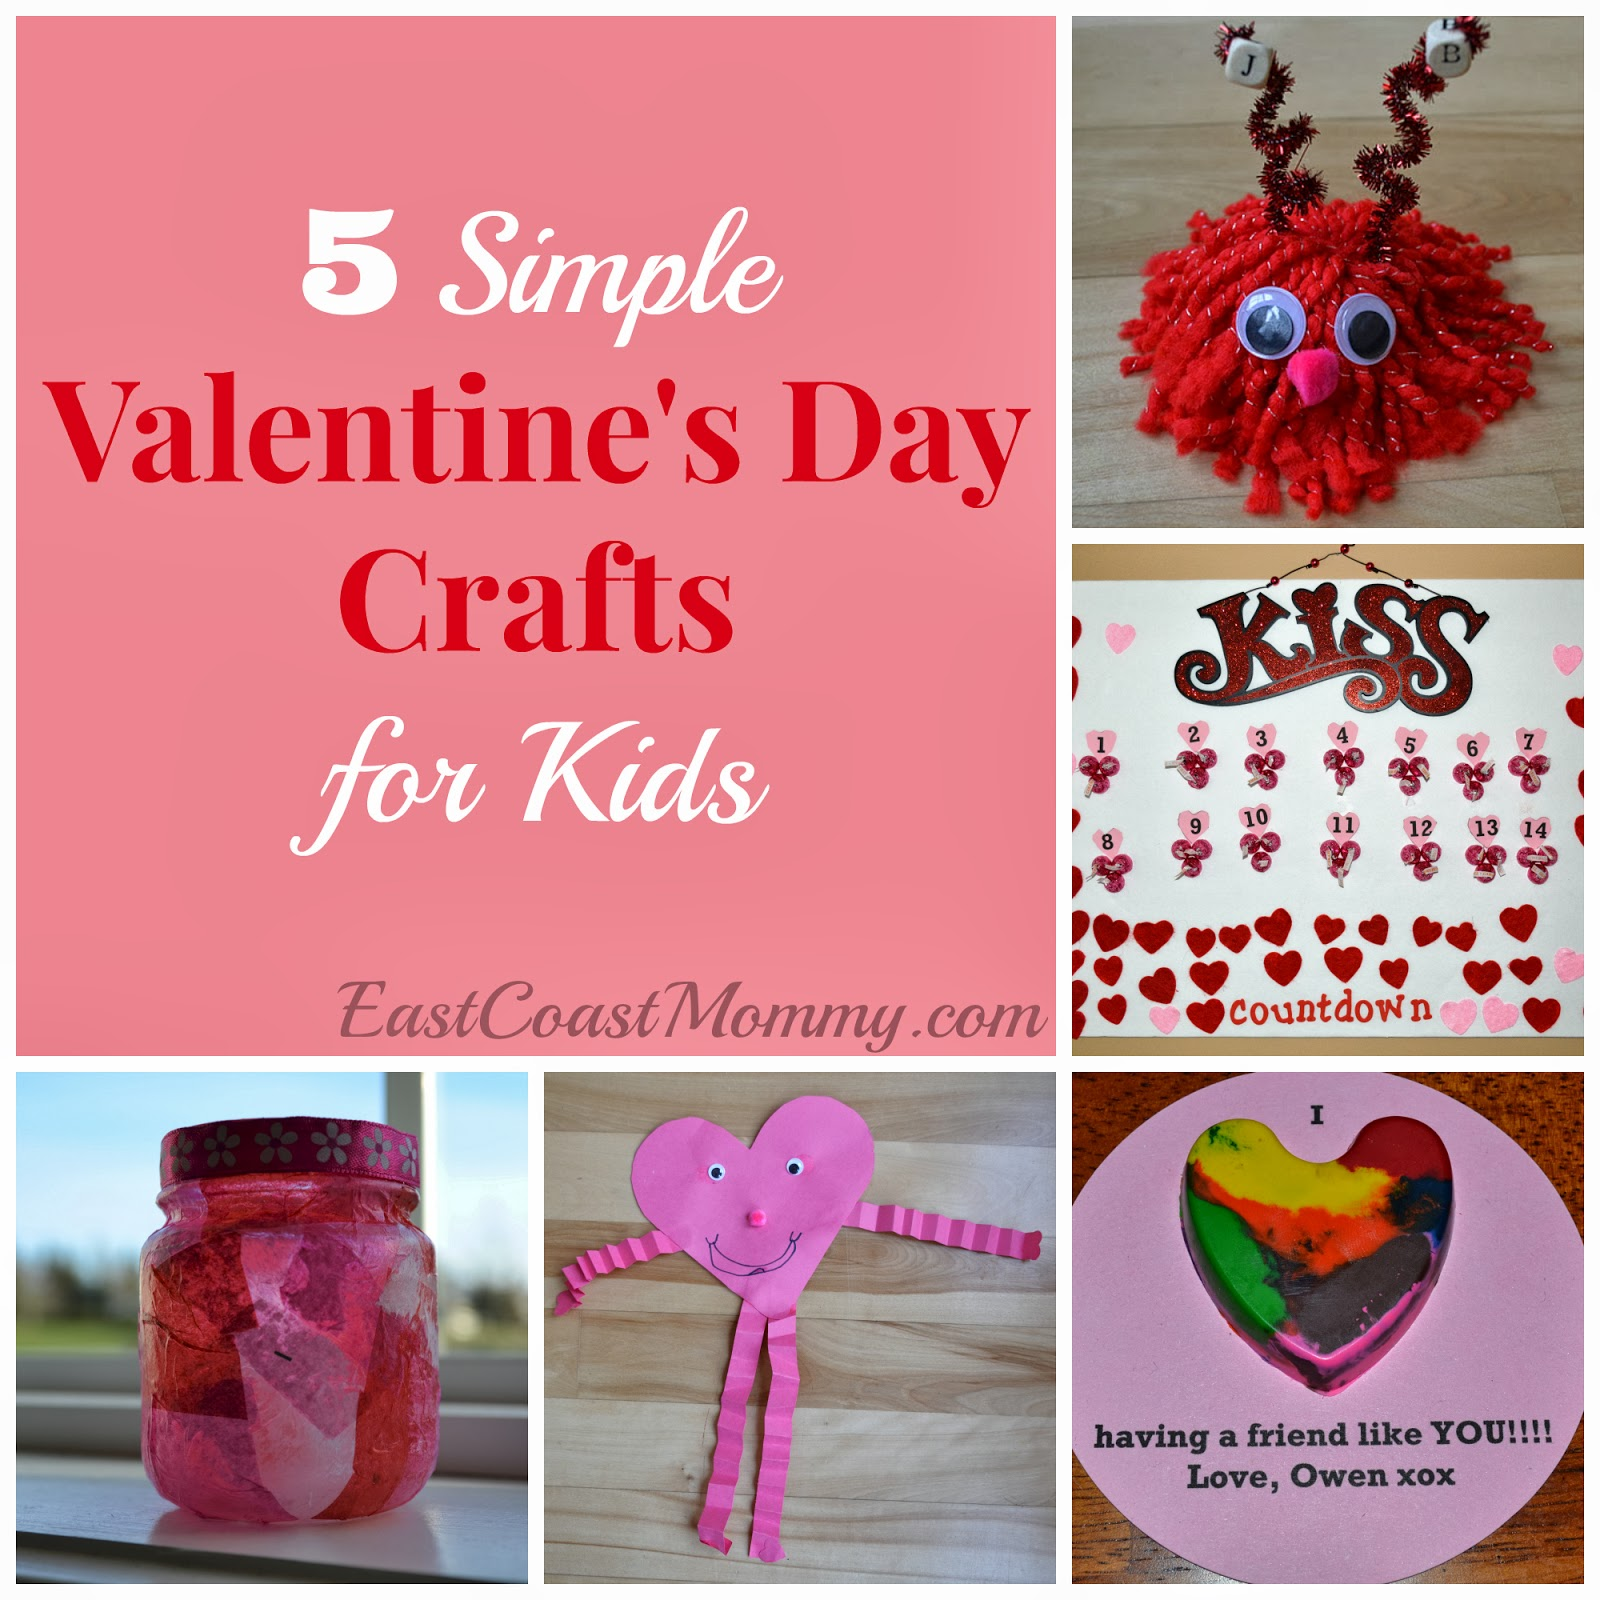 east coast mommy: 5 simple valentine's day crafts for kids, Ideas